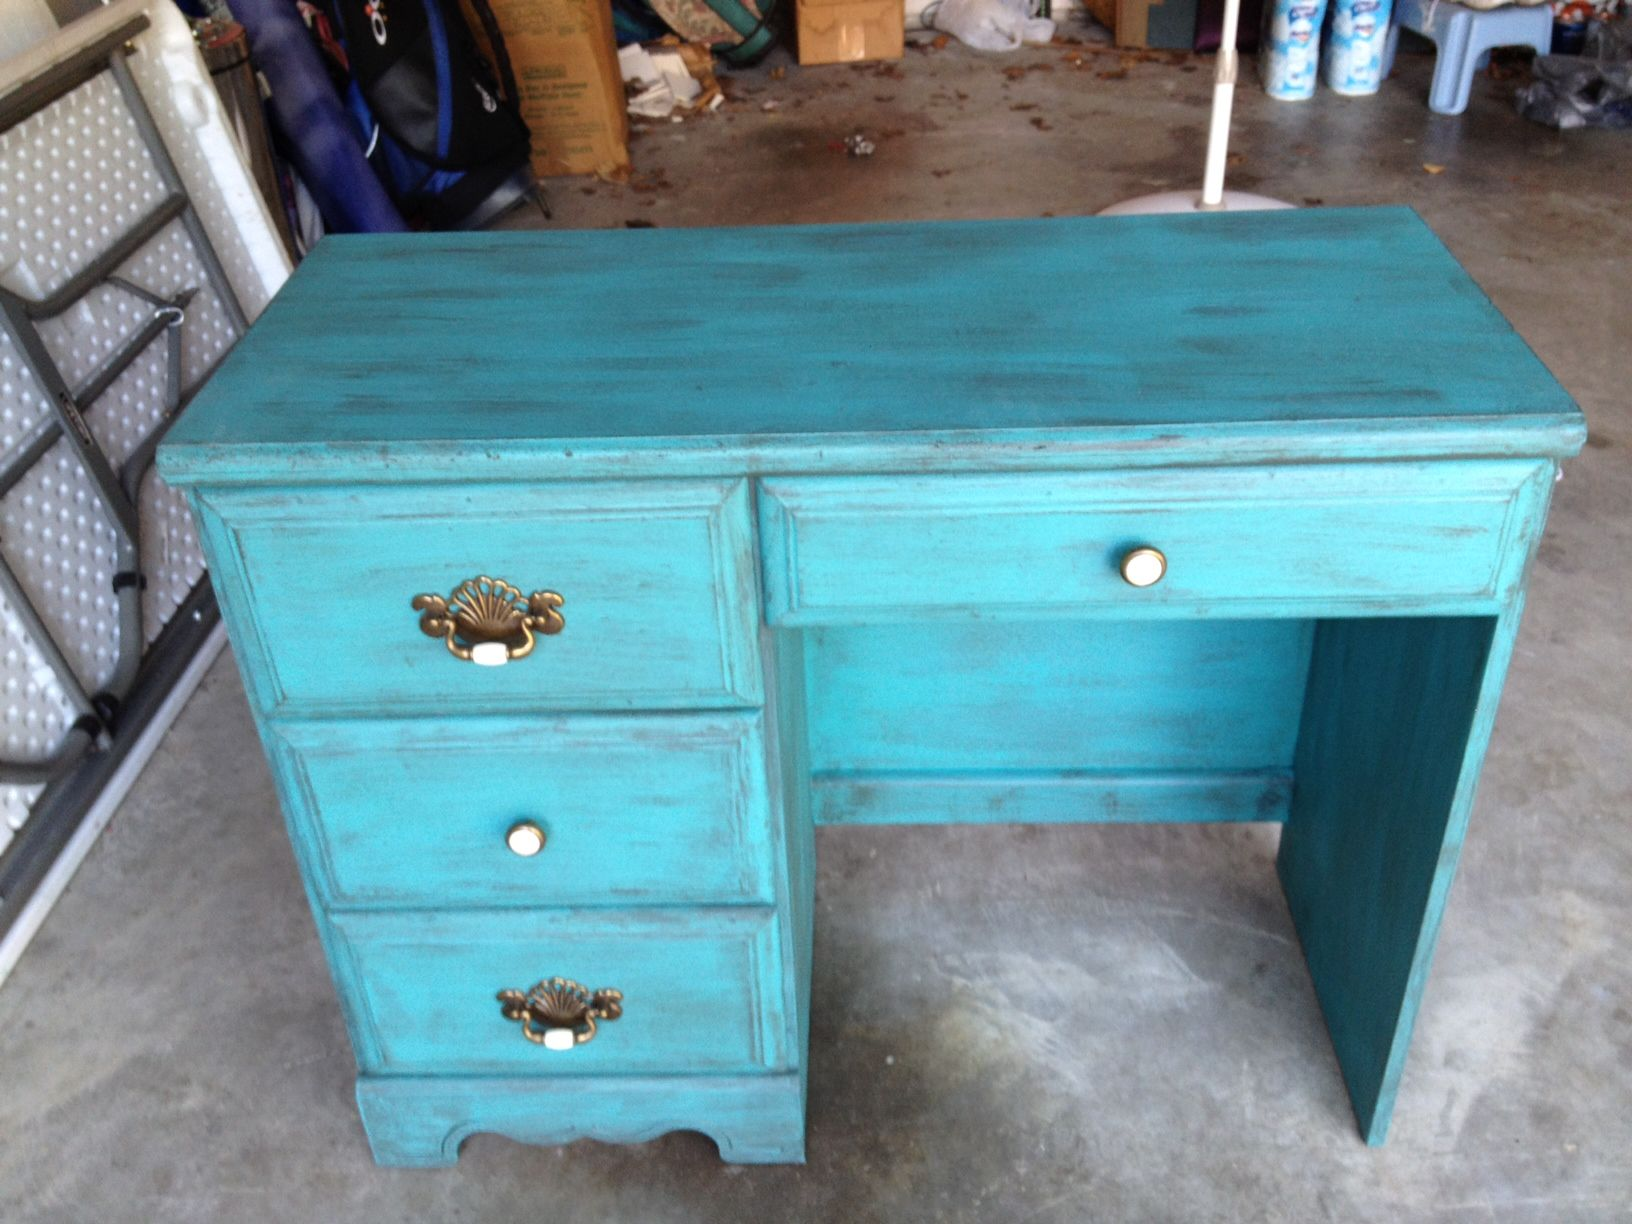 Faux Antiqued My Daughteru0027s Desk From When She Was 4! Itu0027s Particle Board  So Sanded It Well, Used Valspar Paint, And Be Sure To Coat With  Polyurethane After ...